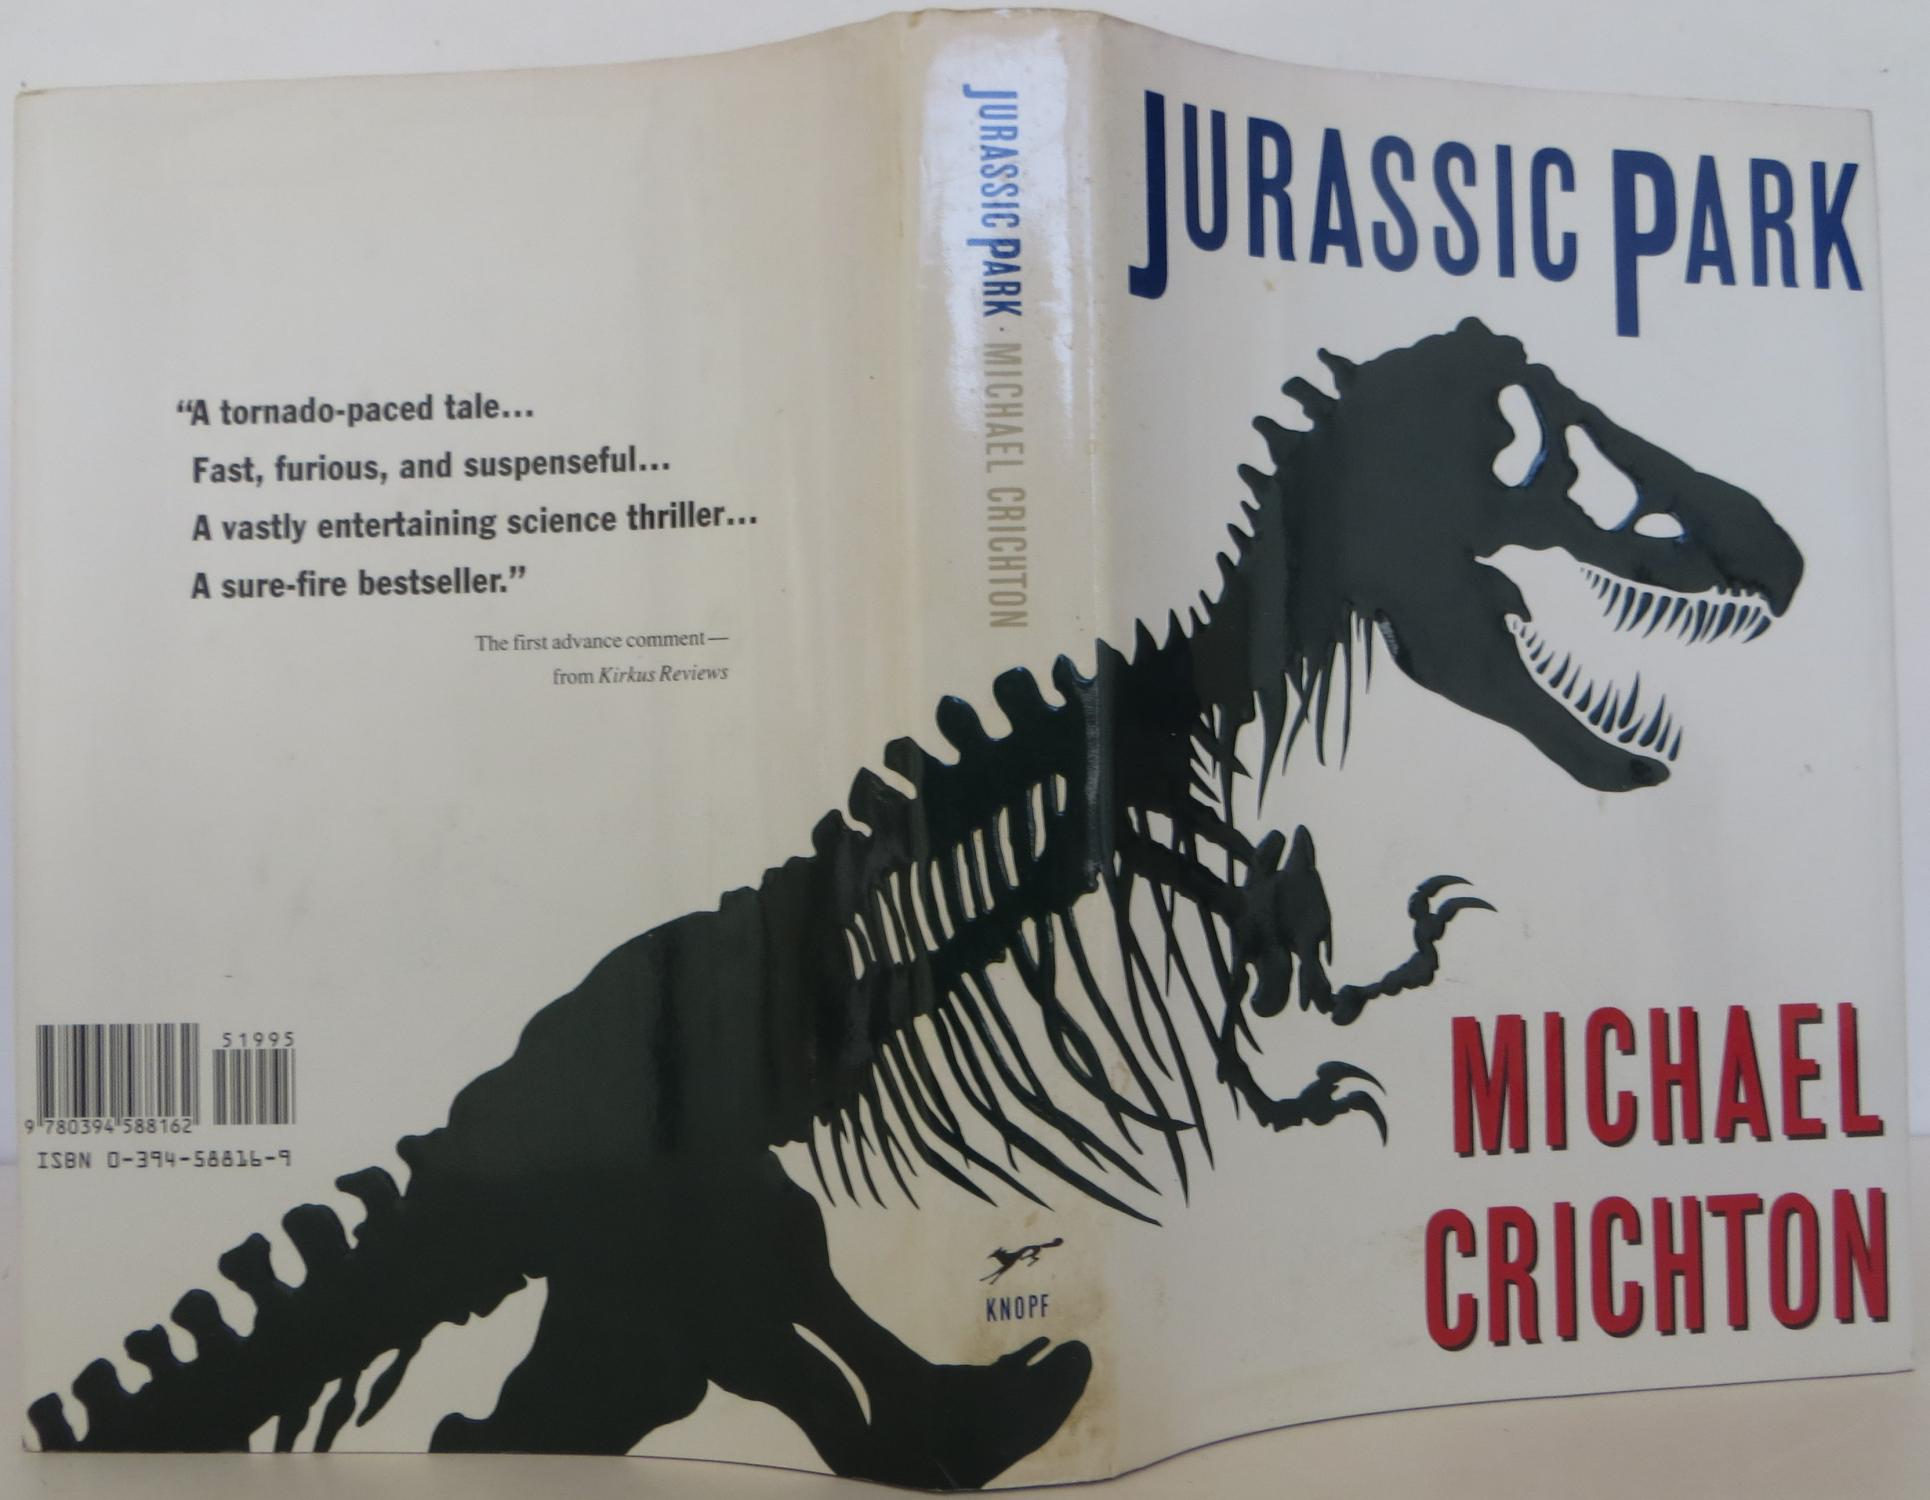 a comparison of book and movie of jurassic park by michael crichton Book vs movie: jurassic park with jurassic world coming out, i decided to compare one of my favorite novels with its film adaptation (and also a movie that's in my top ten) the novel: for most of the 1980s, michael crichton tried to come up with a tale concerning cloned dinosaurs.